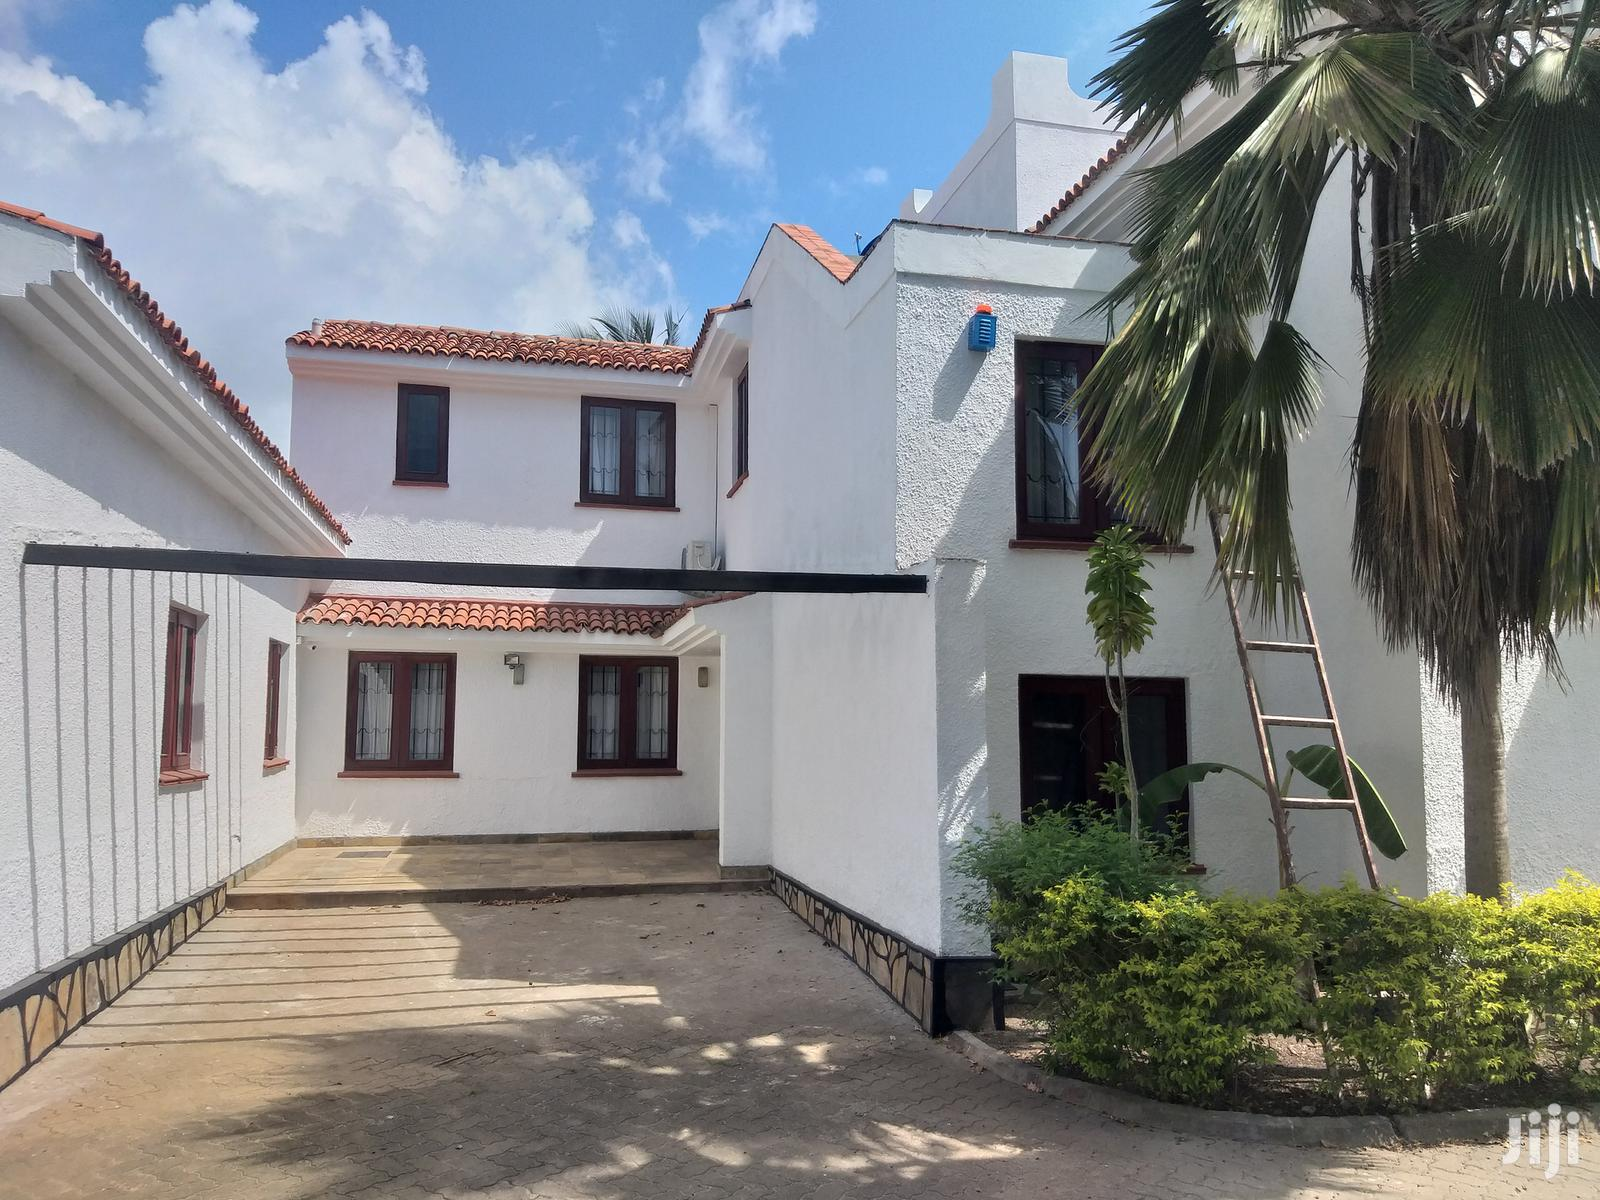 Nyali 3 Bedroom Maisonette For Sale With Swimming Pool